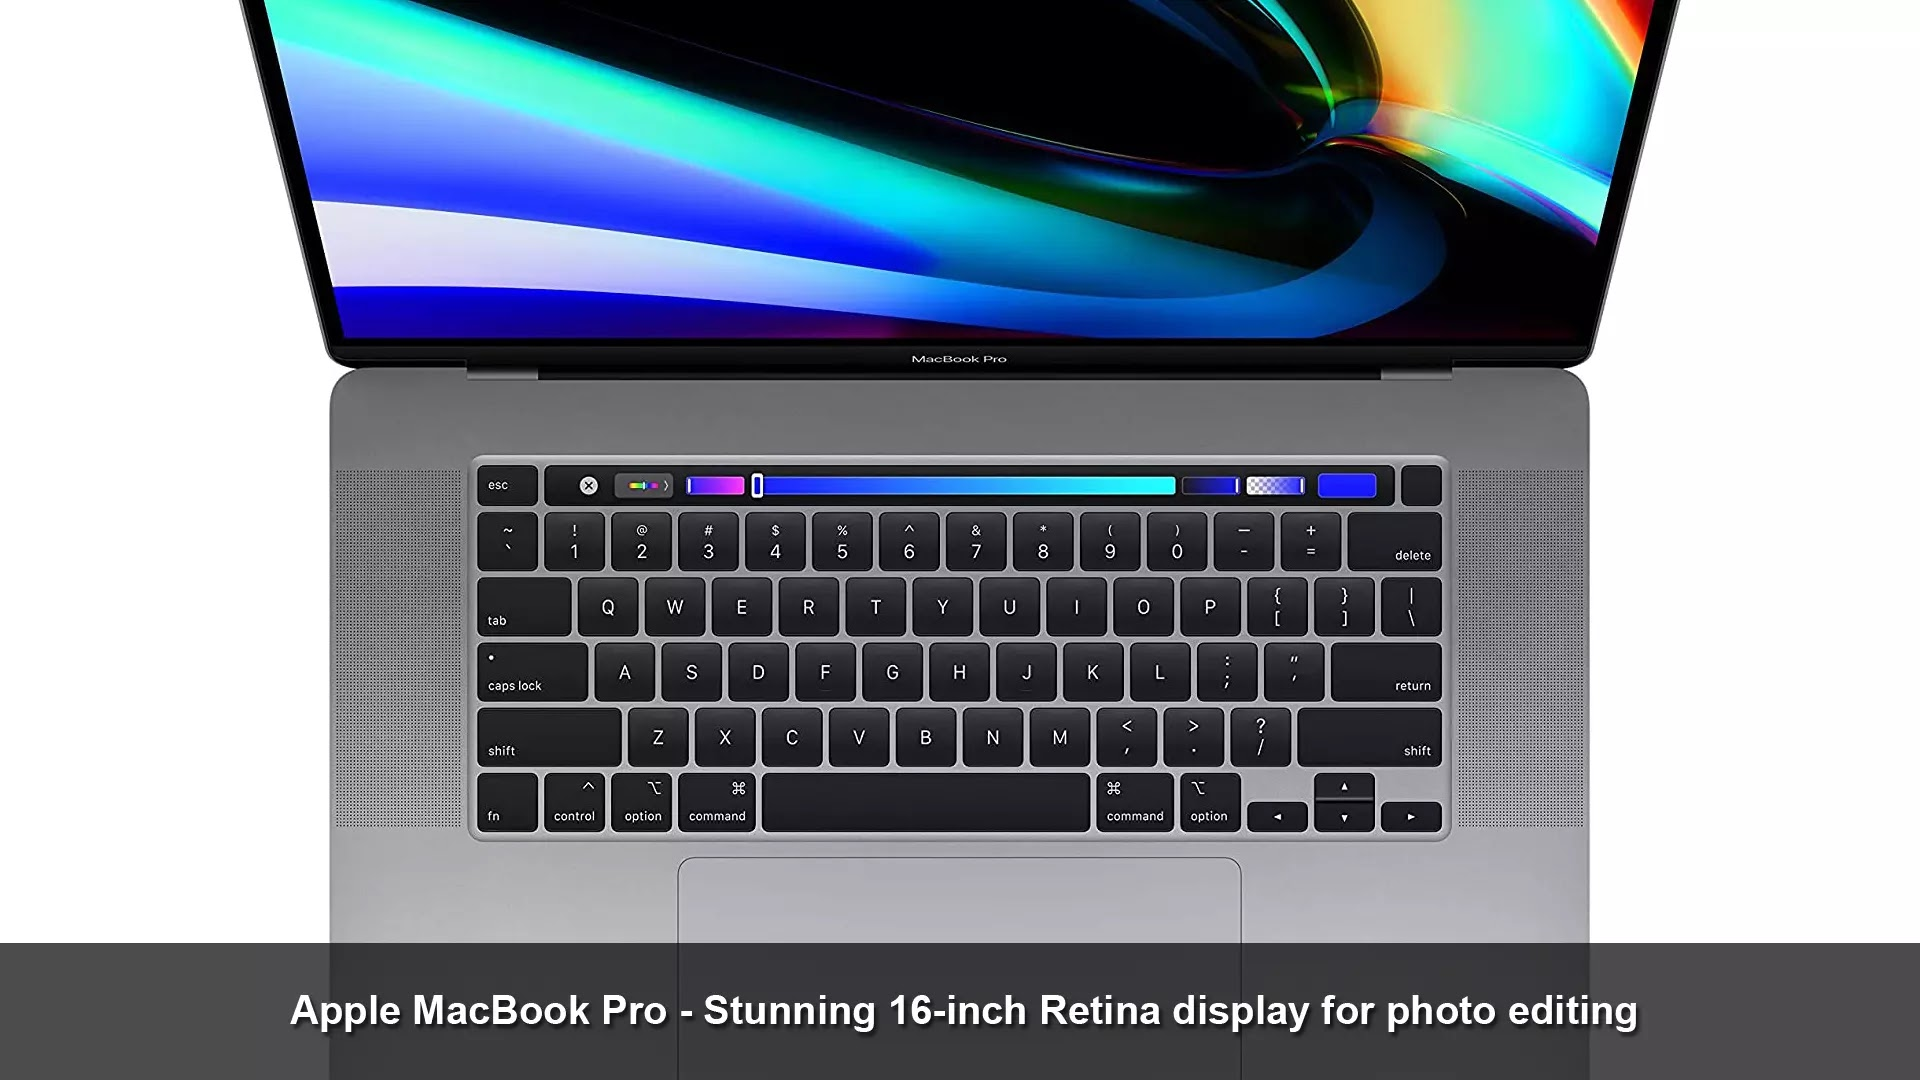 Apple MacBook Pro - stunning 16-inch Retina display for photo editing